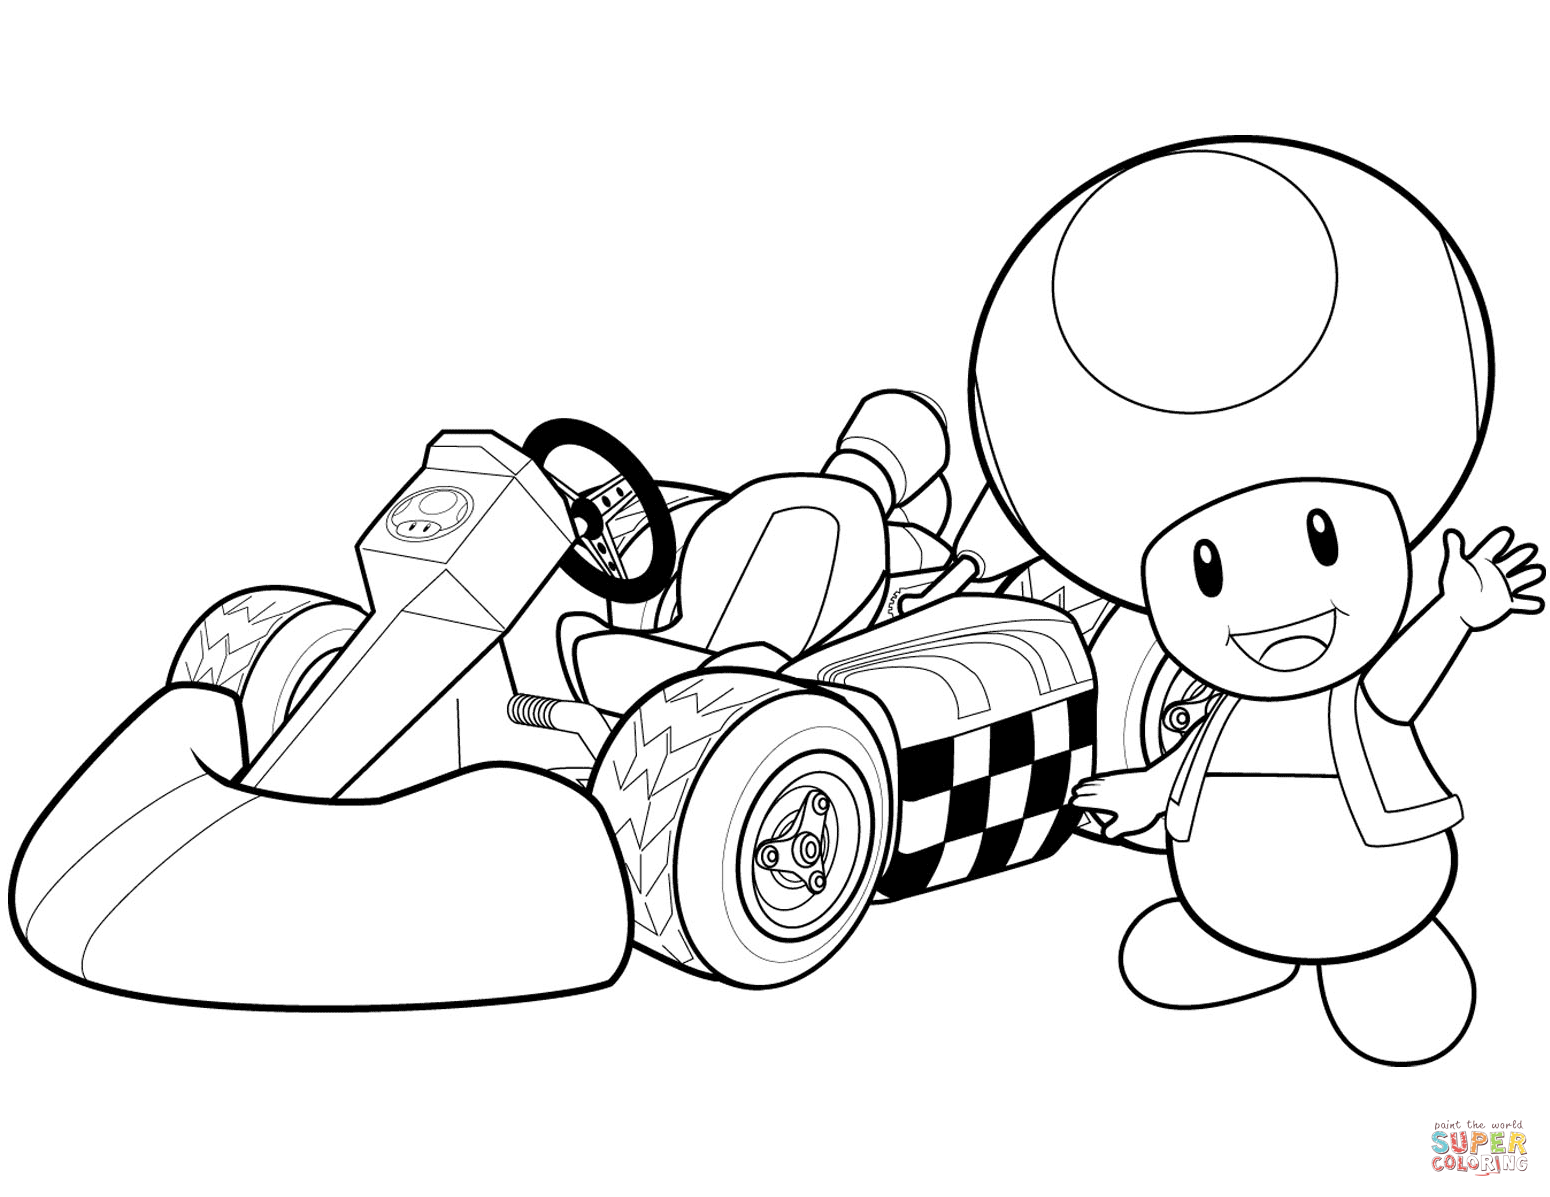 Toad In Mario Kart Wii Coloring Page